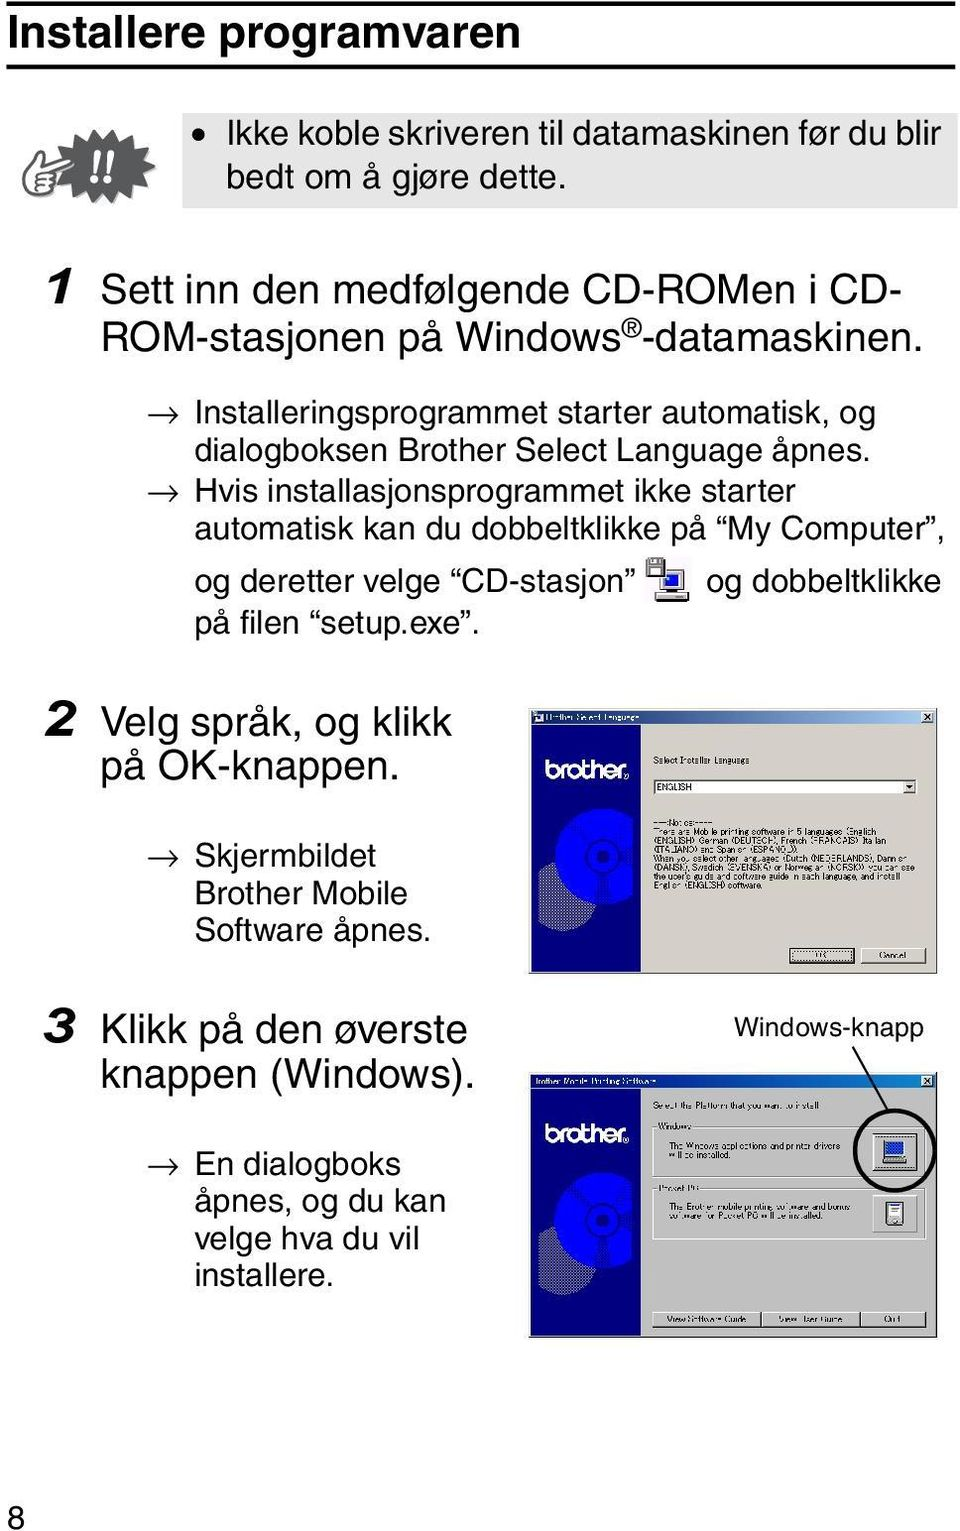 Installeringsprogrammet starter automatisk, og dialogboksen Brother Select Language åpnes.